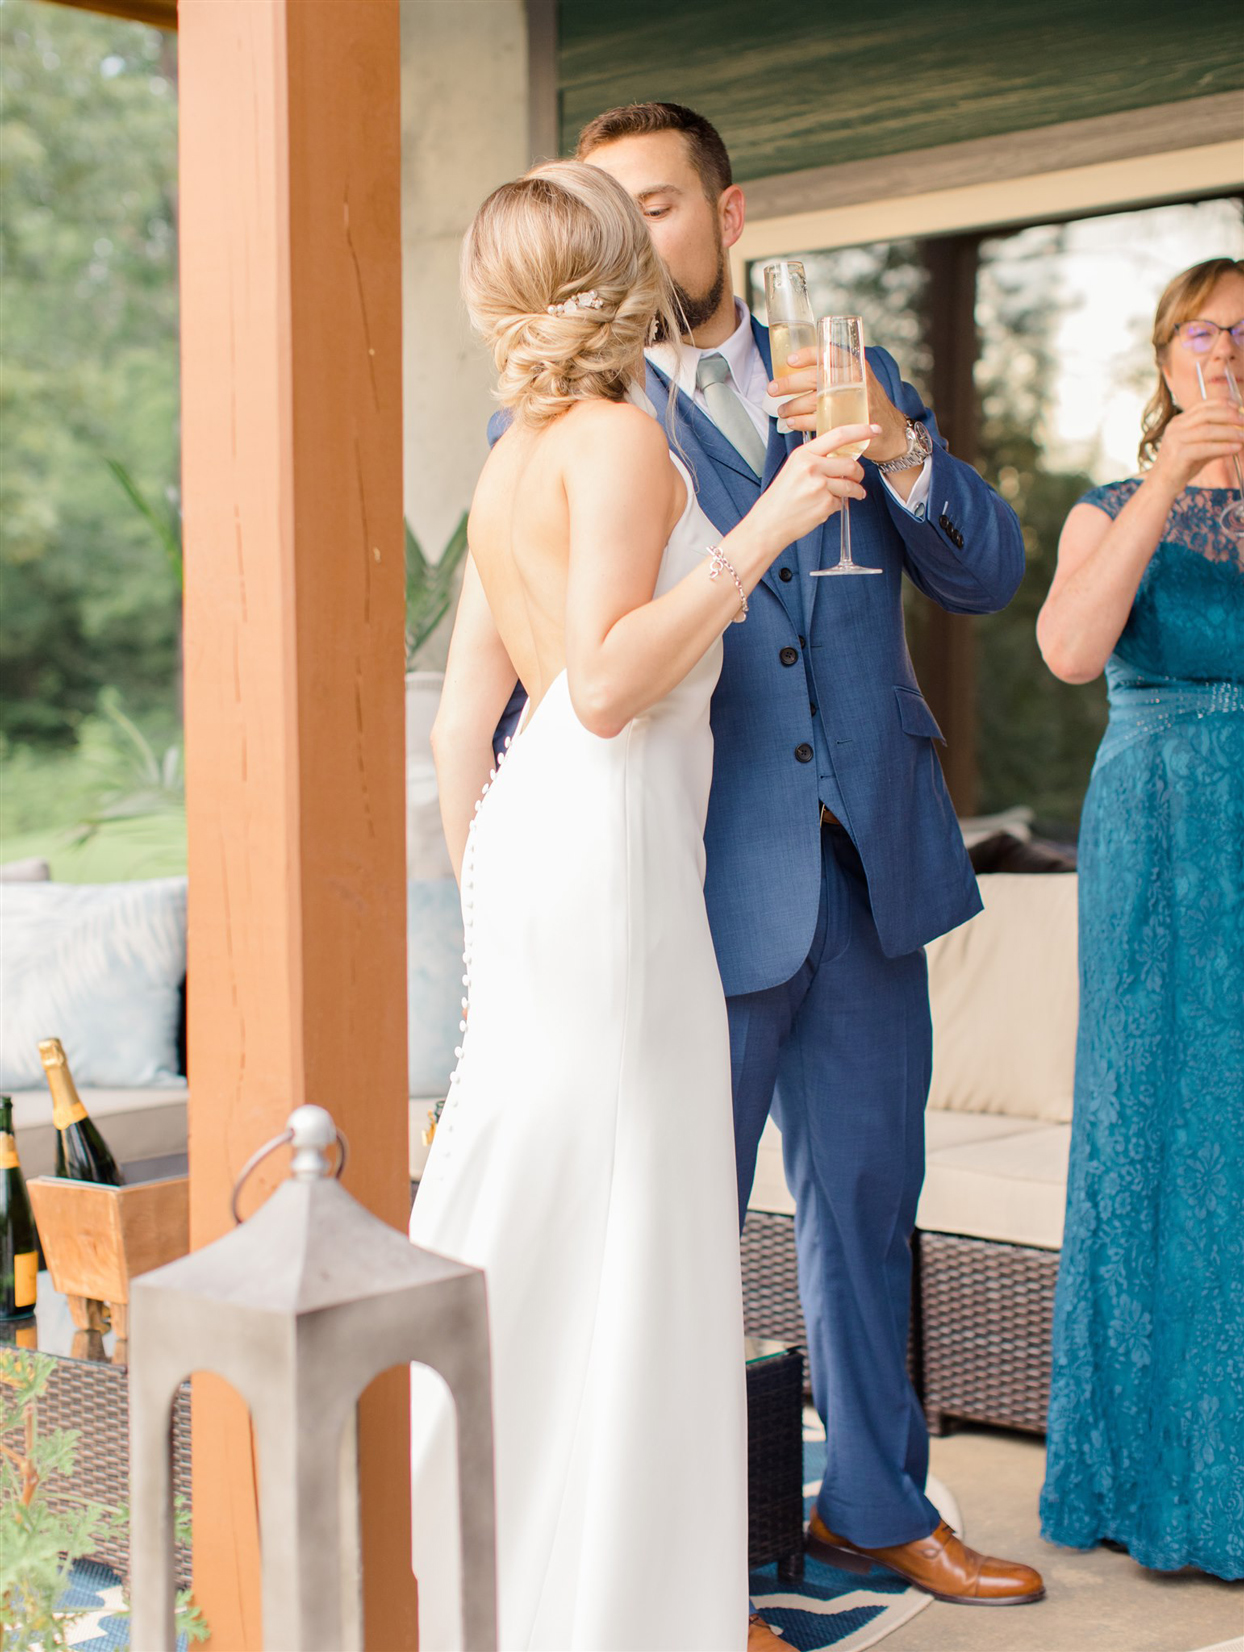 bride and groom cheersing and kissing on porch